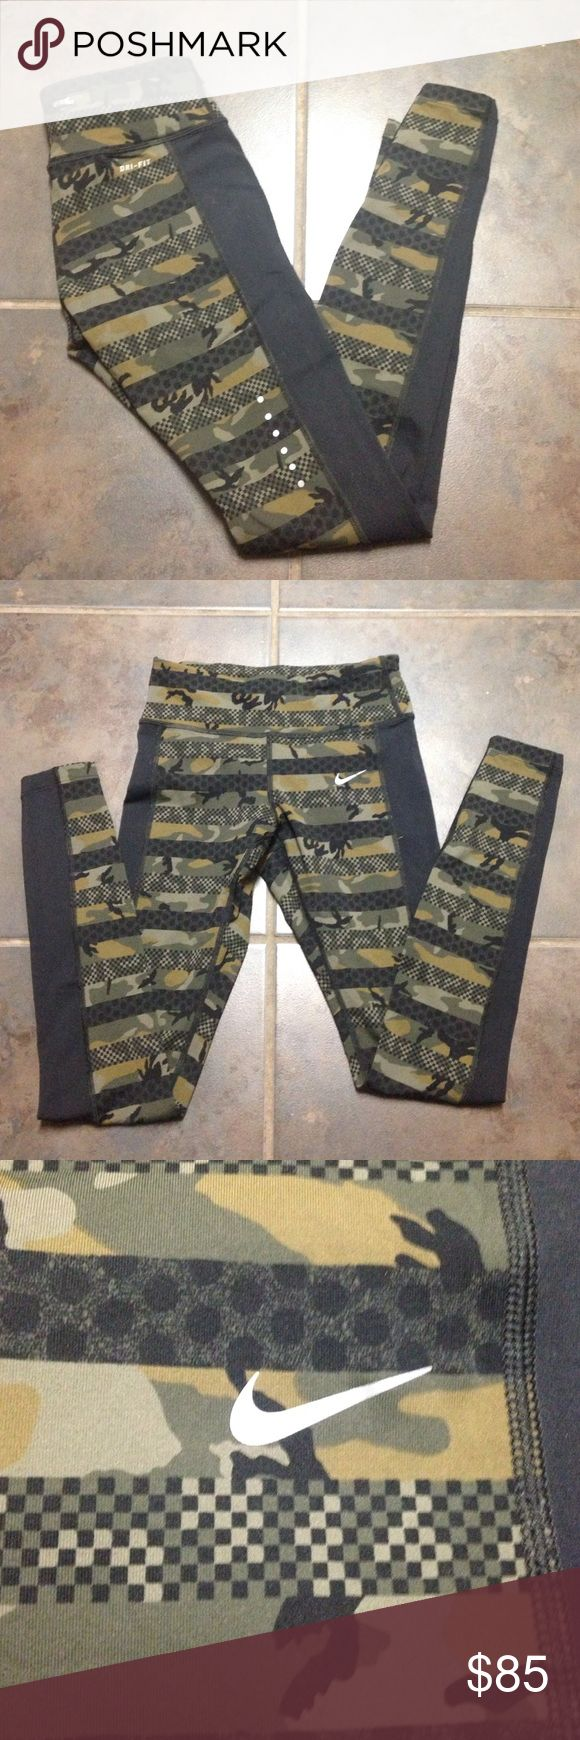 NIKE DRY FIT CAMO LEGGINGS!! NWOT Please someone scoop these up! They are so cute, I just had to have them, but my darn belly is just too big! They do make my butt look really good, though. These have never been worn out of the house, unfortunately. Nike Pants